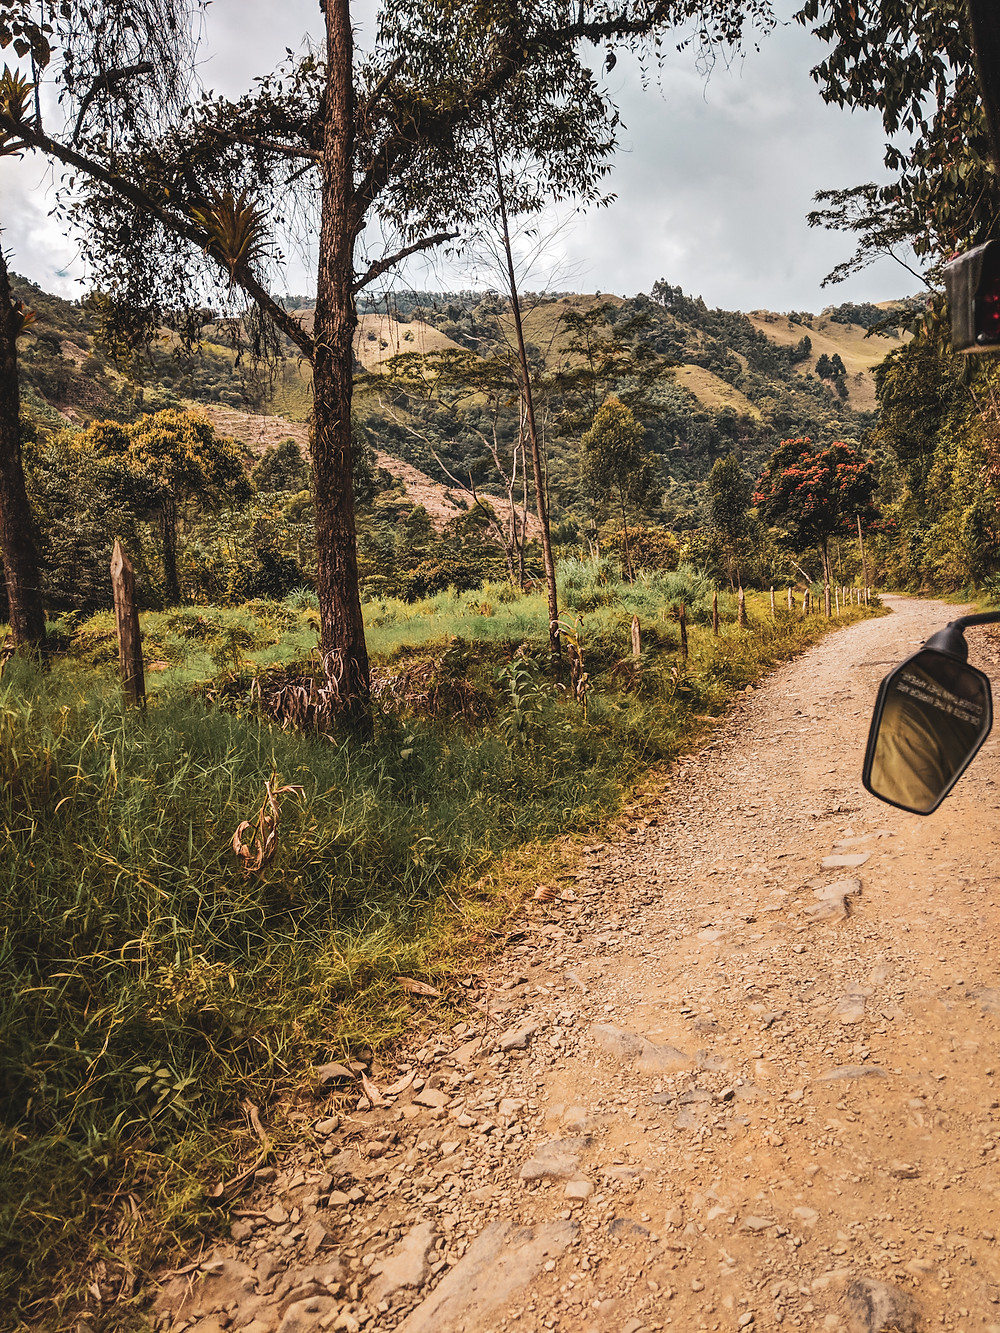 Tuk tuk ride in the mountains of Jardin, Colombia.